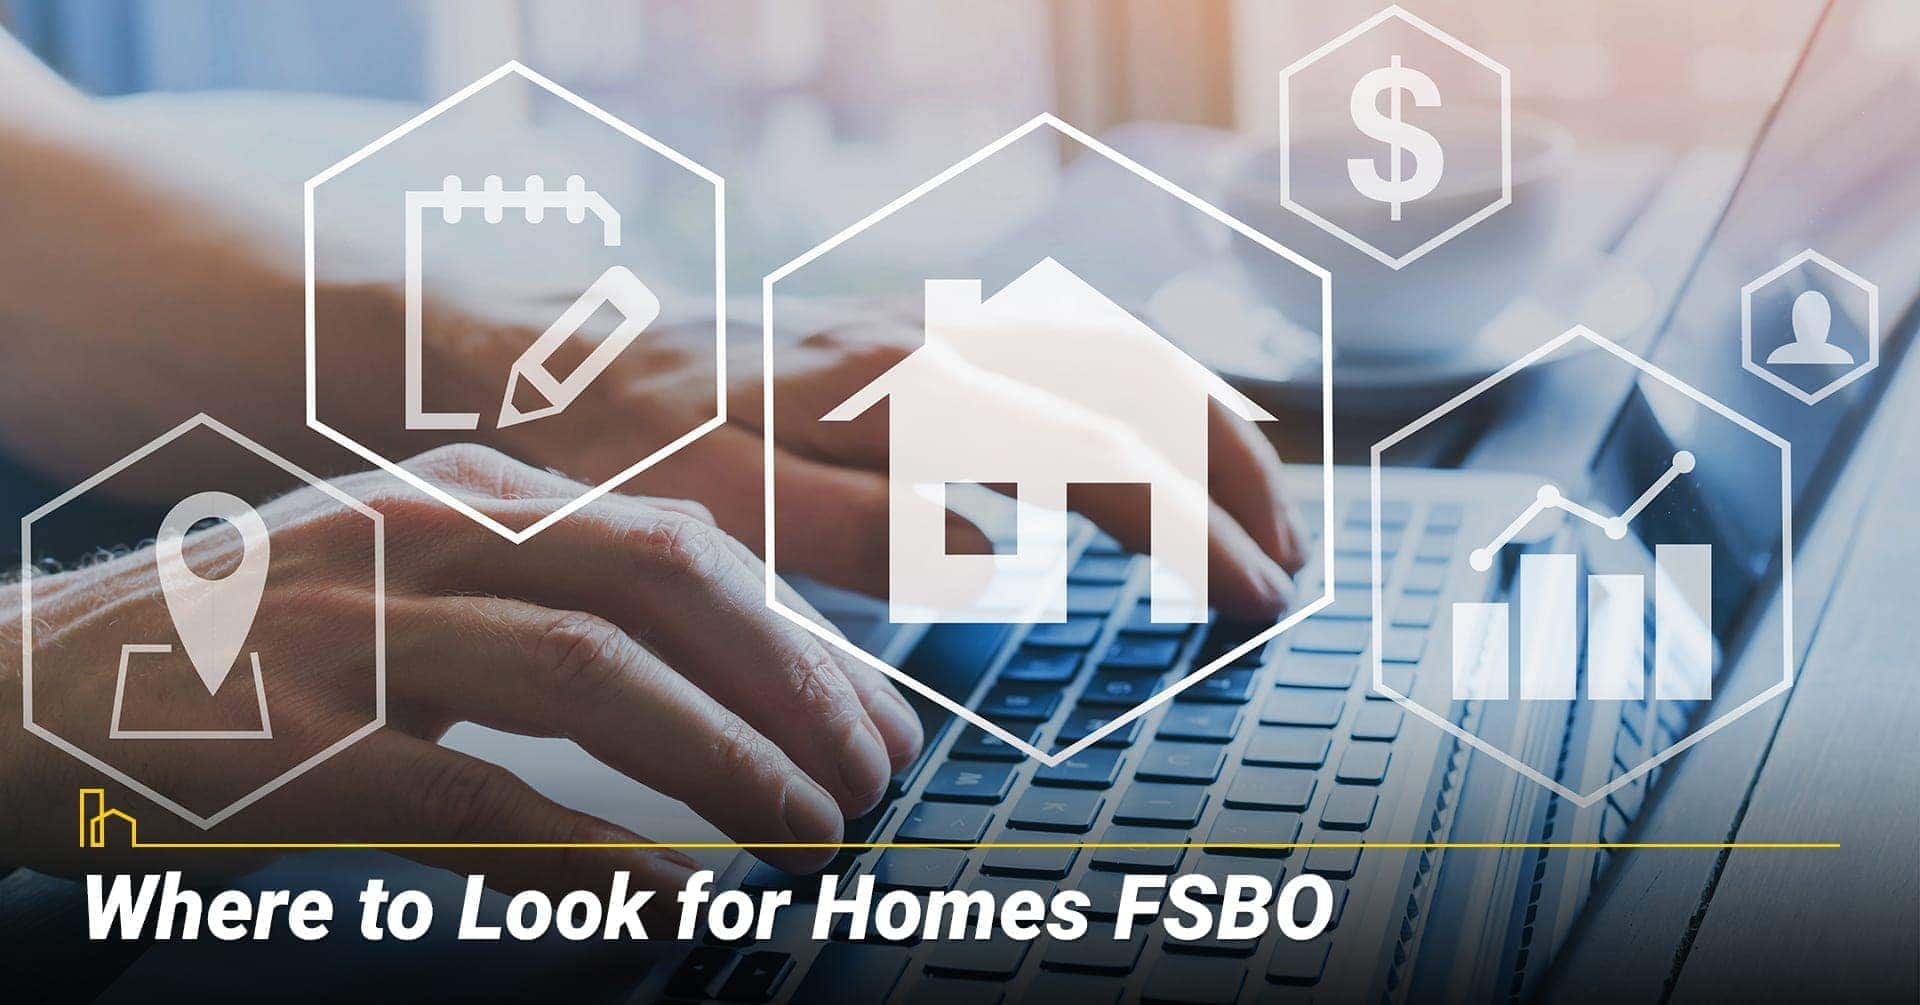 Where to Look for Homes FSBO, location for FSBO homes